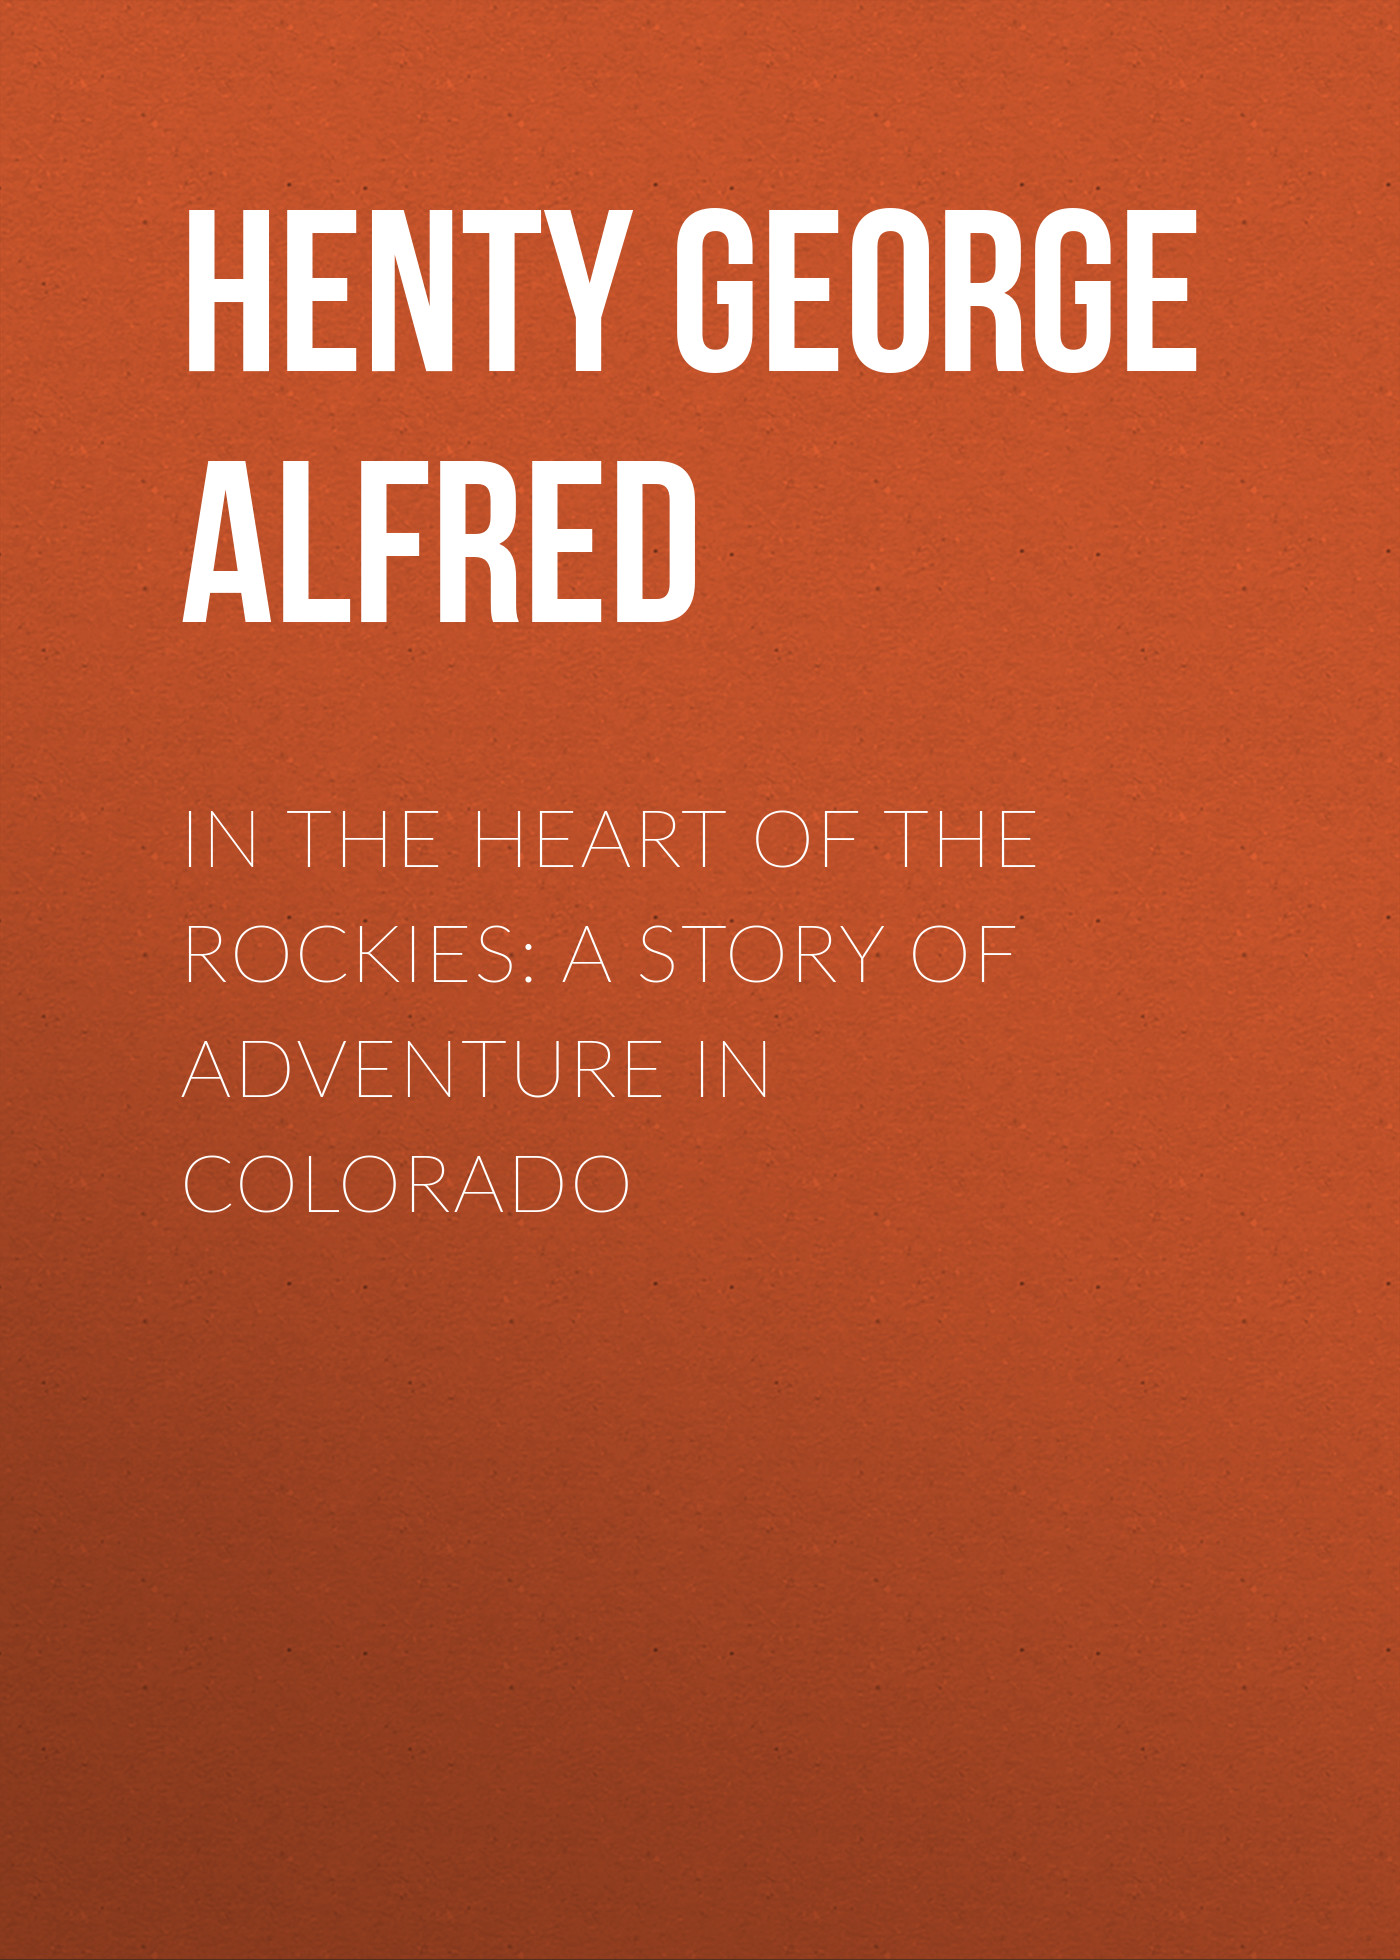 Henty George Alfred In the Heart of the Rockies: A Story of Adventure in Colorado henty george alfred in the hands of the malays and other stories